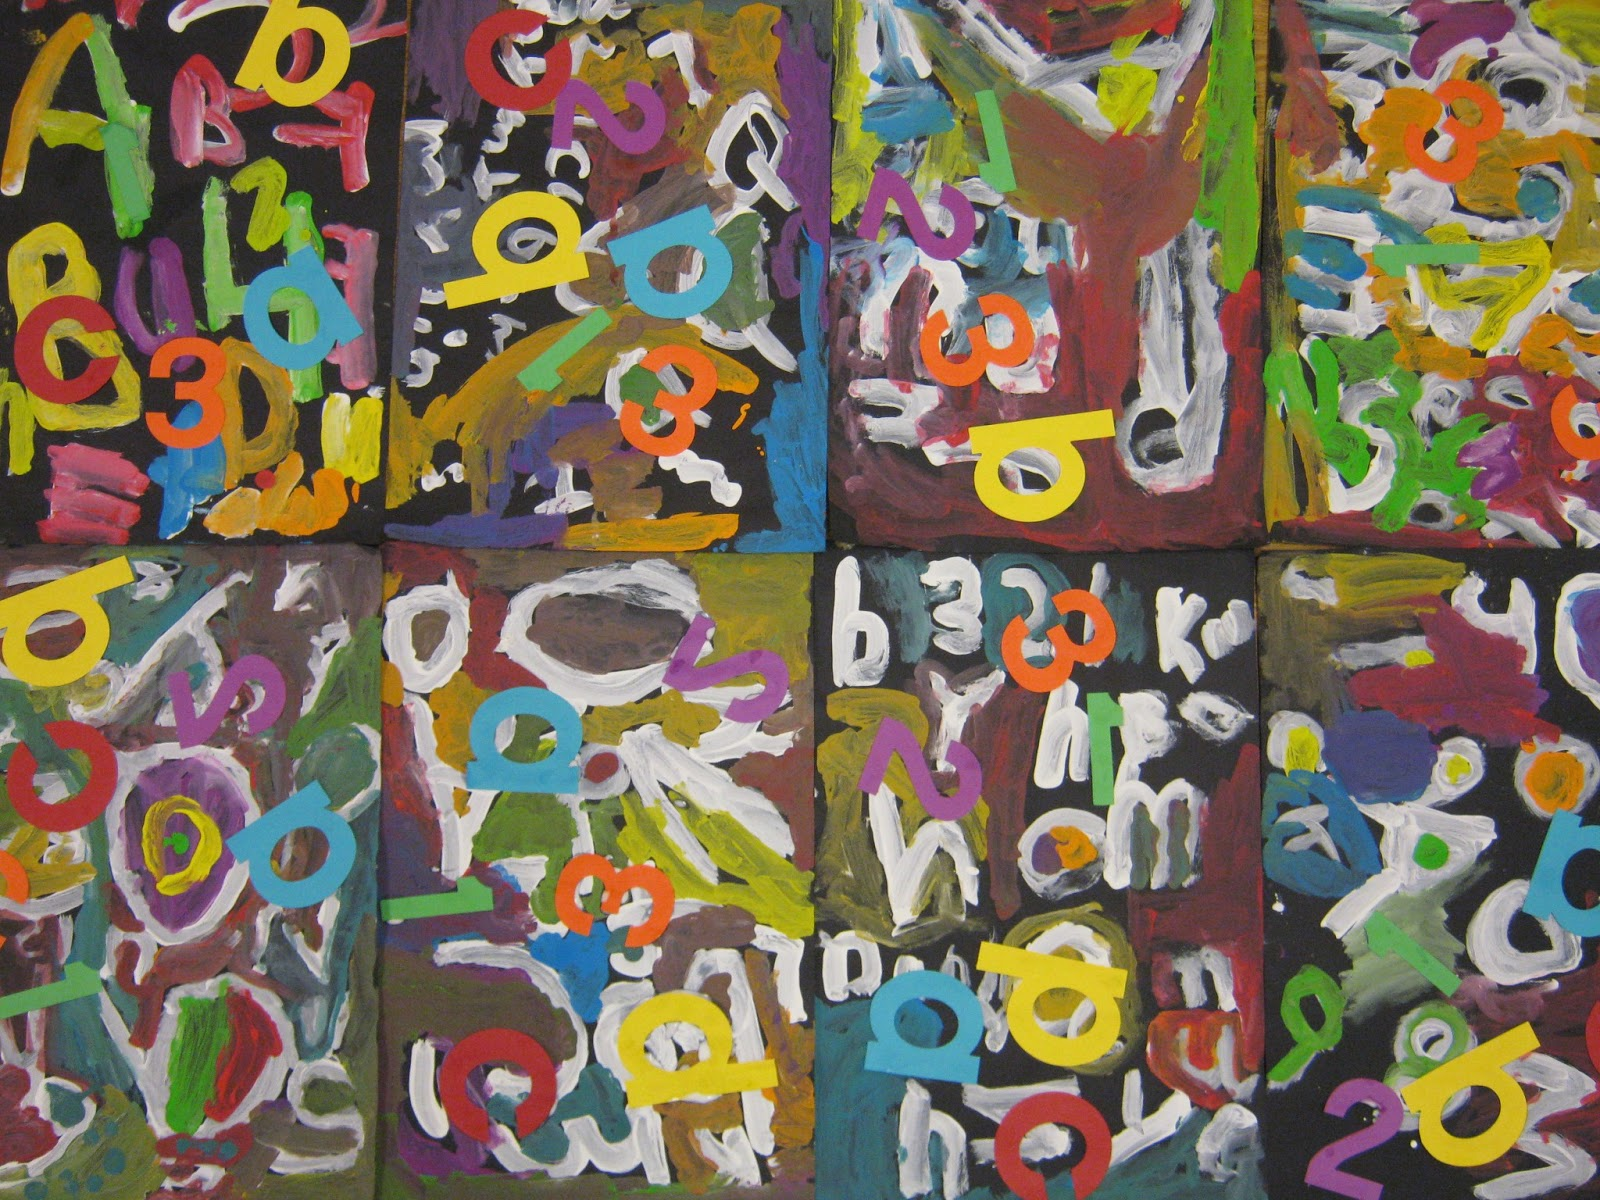 Kindergarten Abstract Alphabet Painting on This Was A Collaborative Project I Did With One